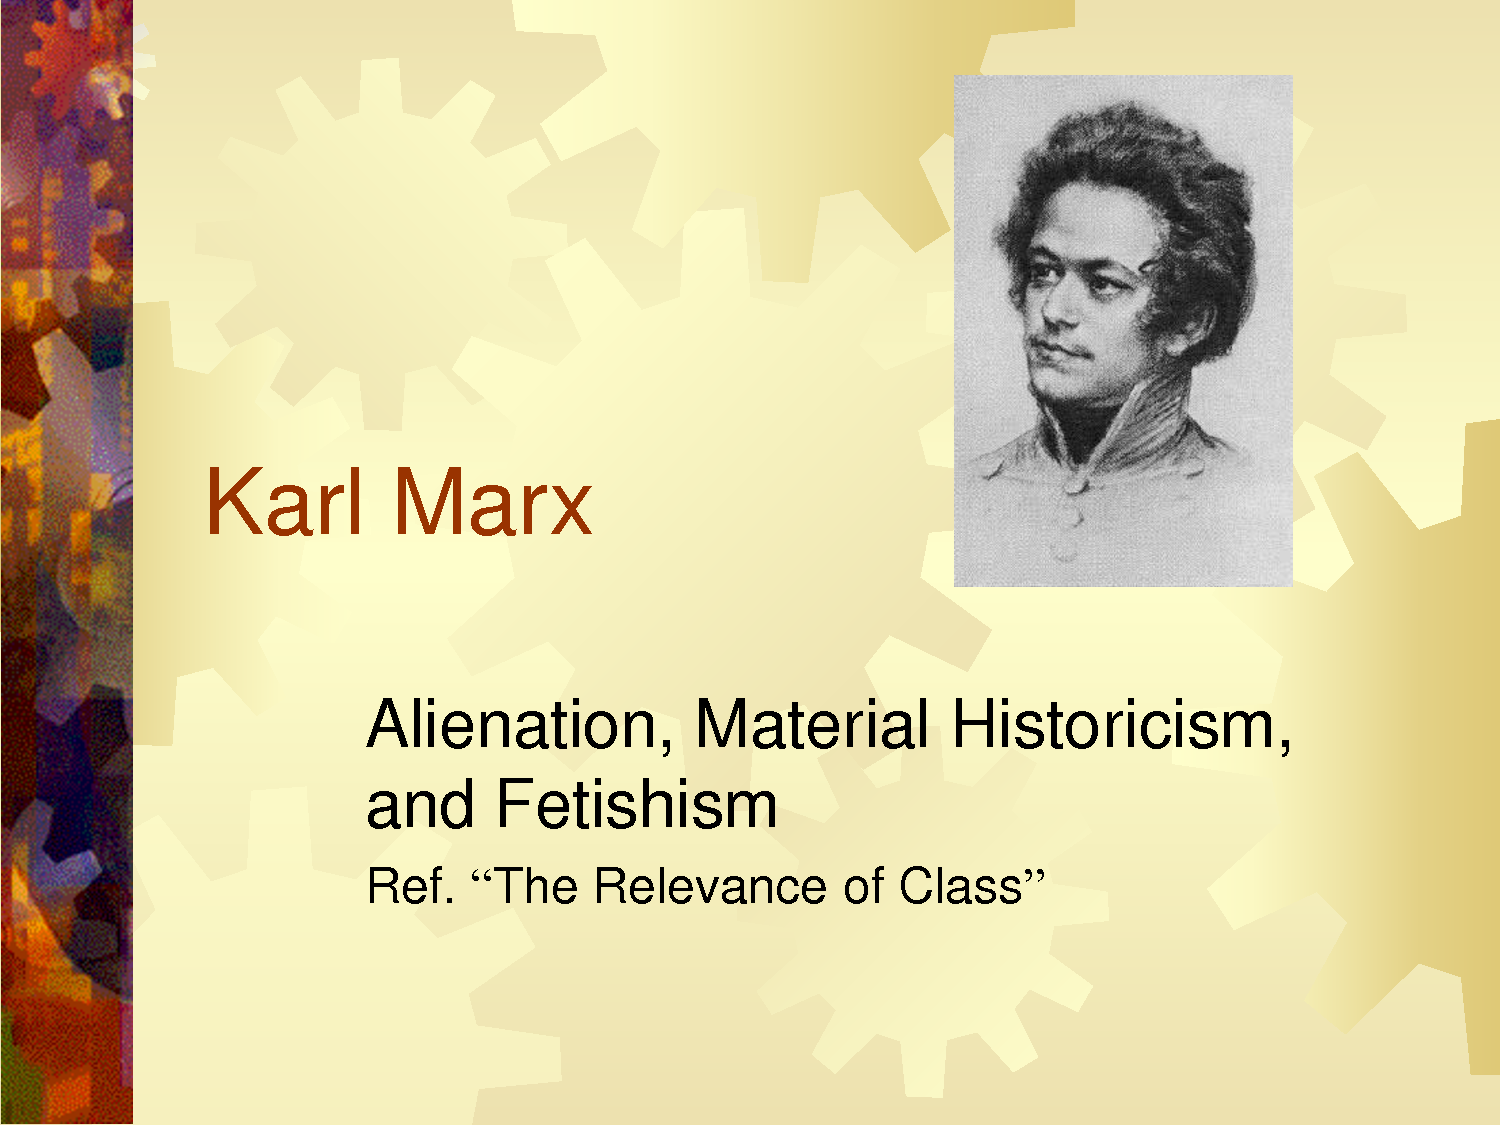 outline and examine marx's concept of Overview of the marxist perspective marxism is a 'structural conflict' perspective they see society as structured along class lines with institutions generally working in the interests of the small elite class who have economic power (the 'bourgeoisie') and the much larger working class (the 'proletariat'.